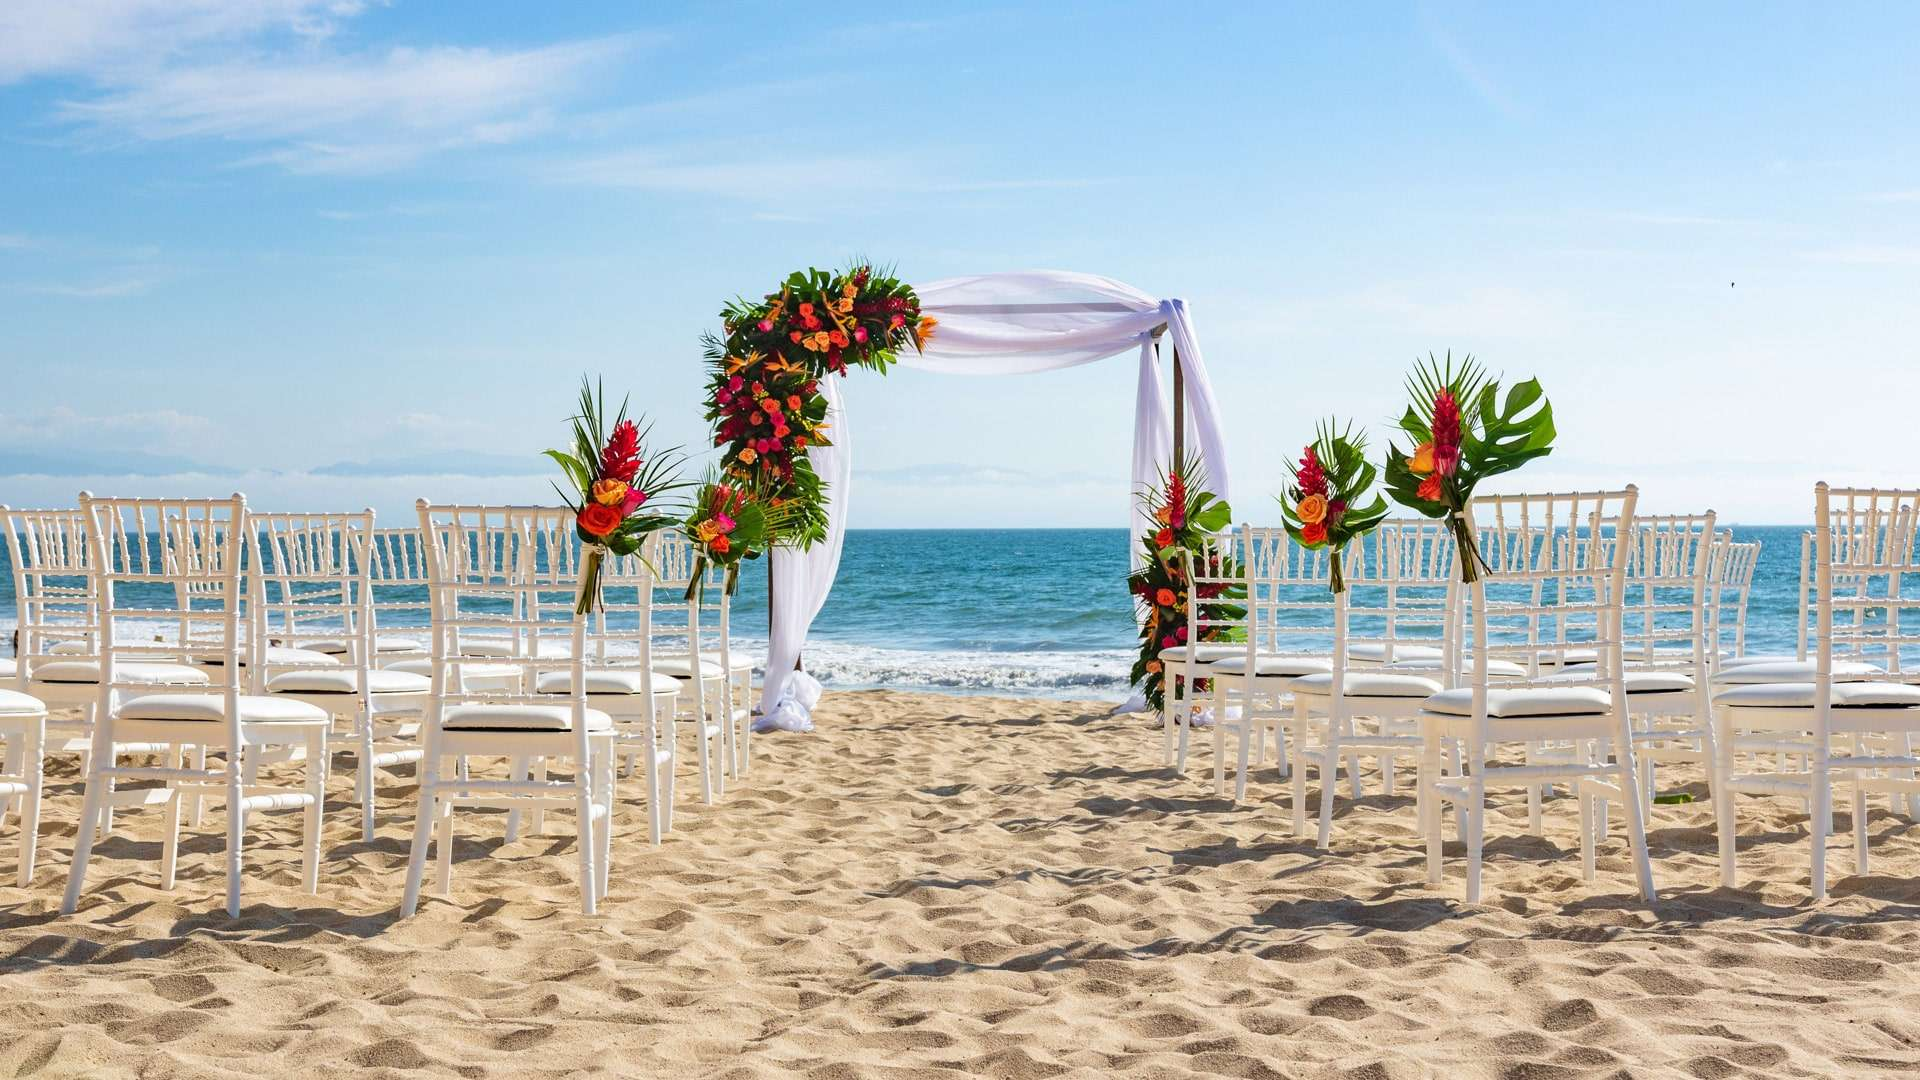 The Best Puerto Vallarta Wedding Venues